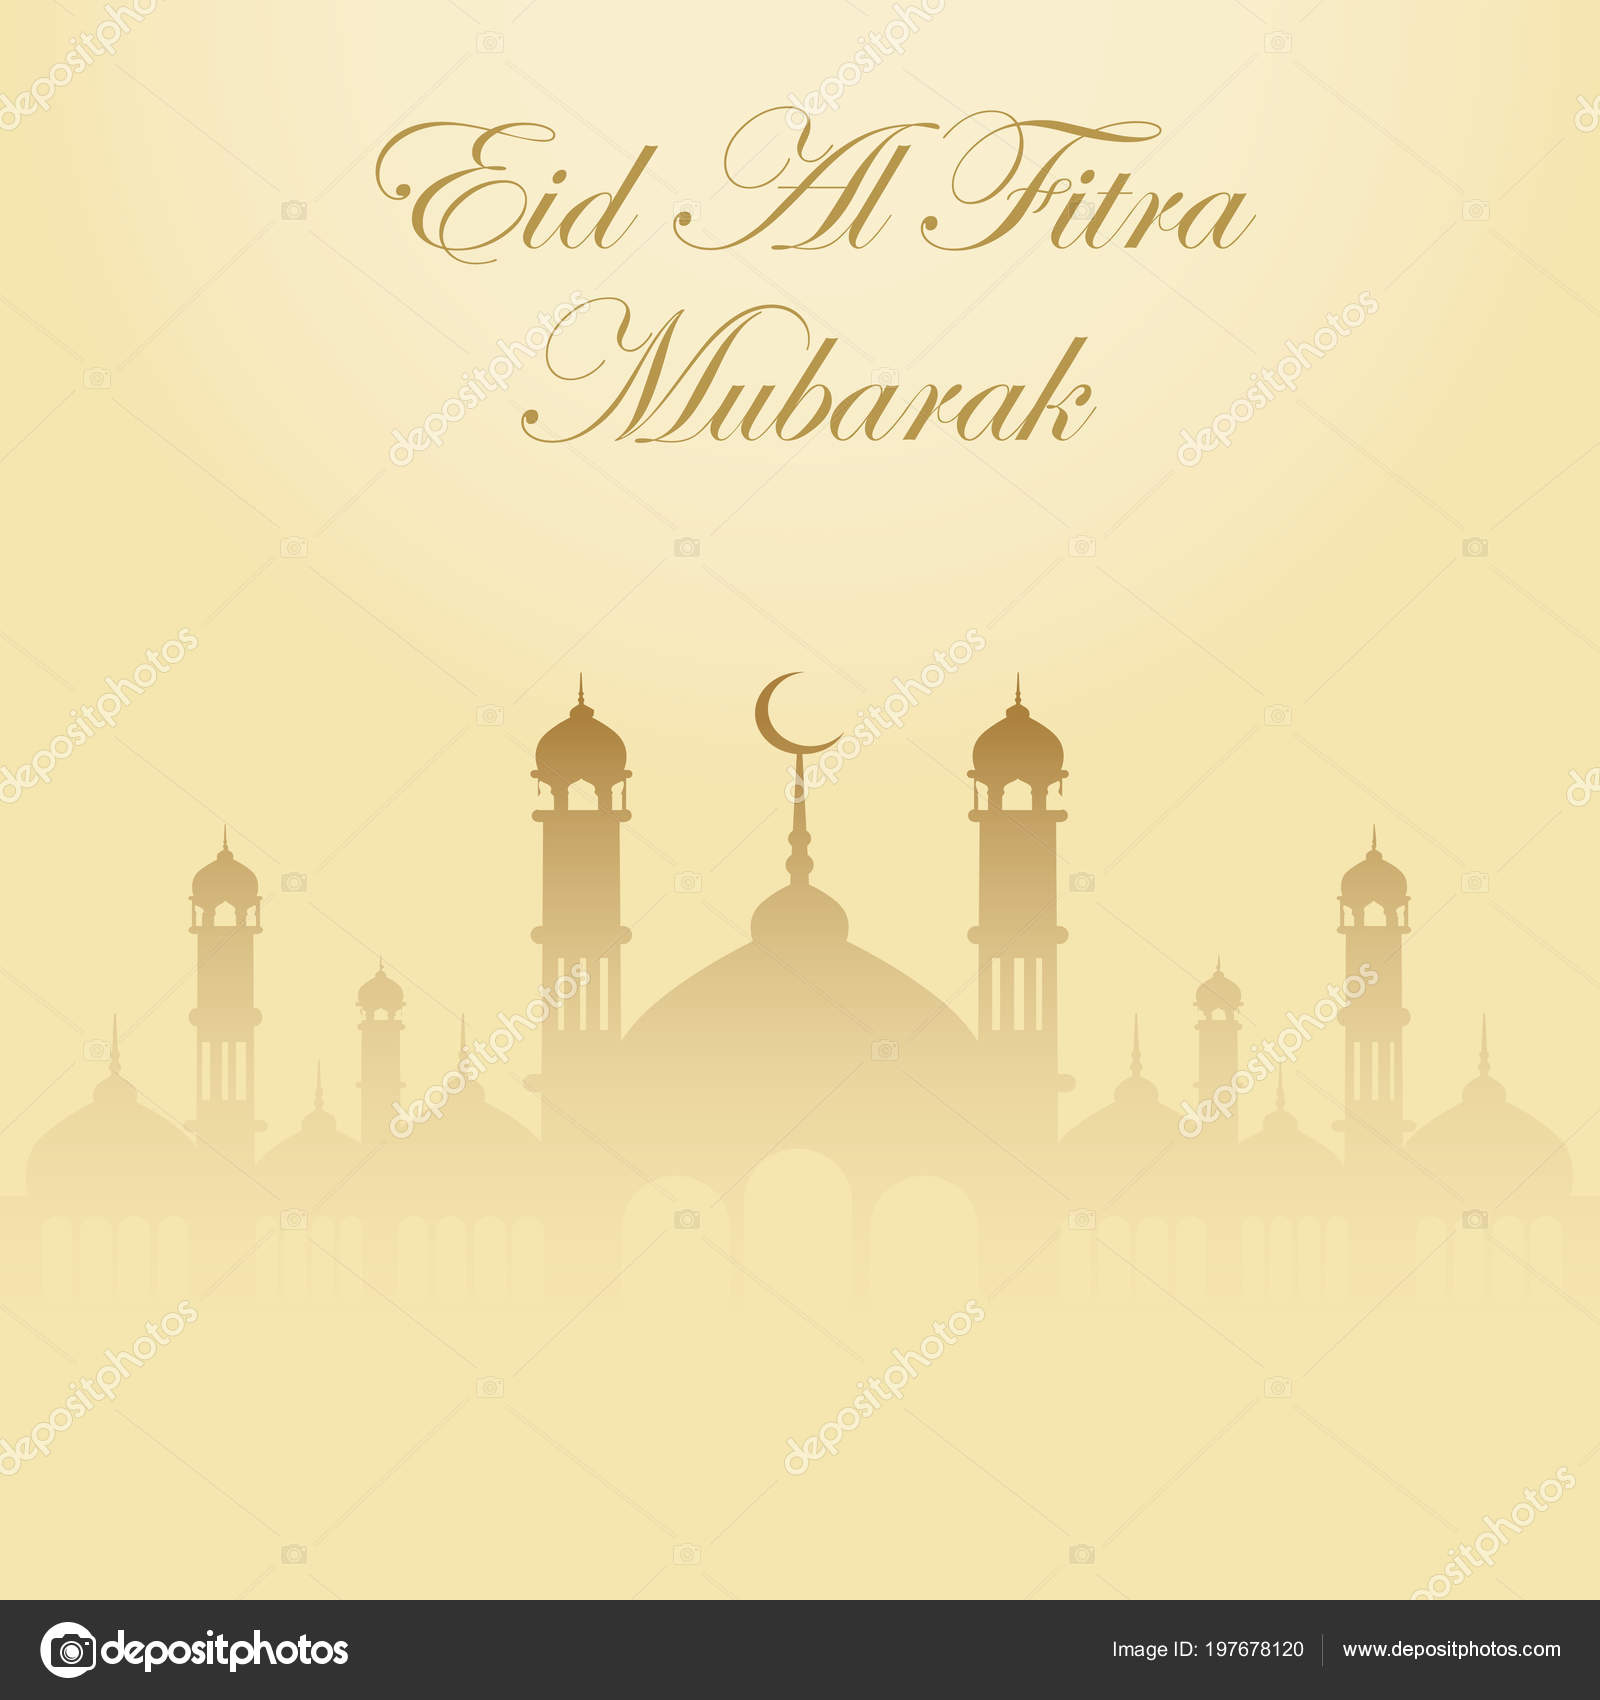 Eid Mubarak Greeting Background For The Muslim Holiday Vector